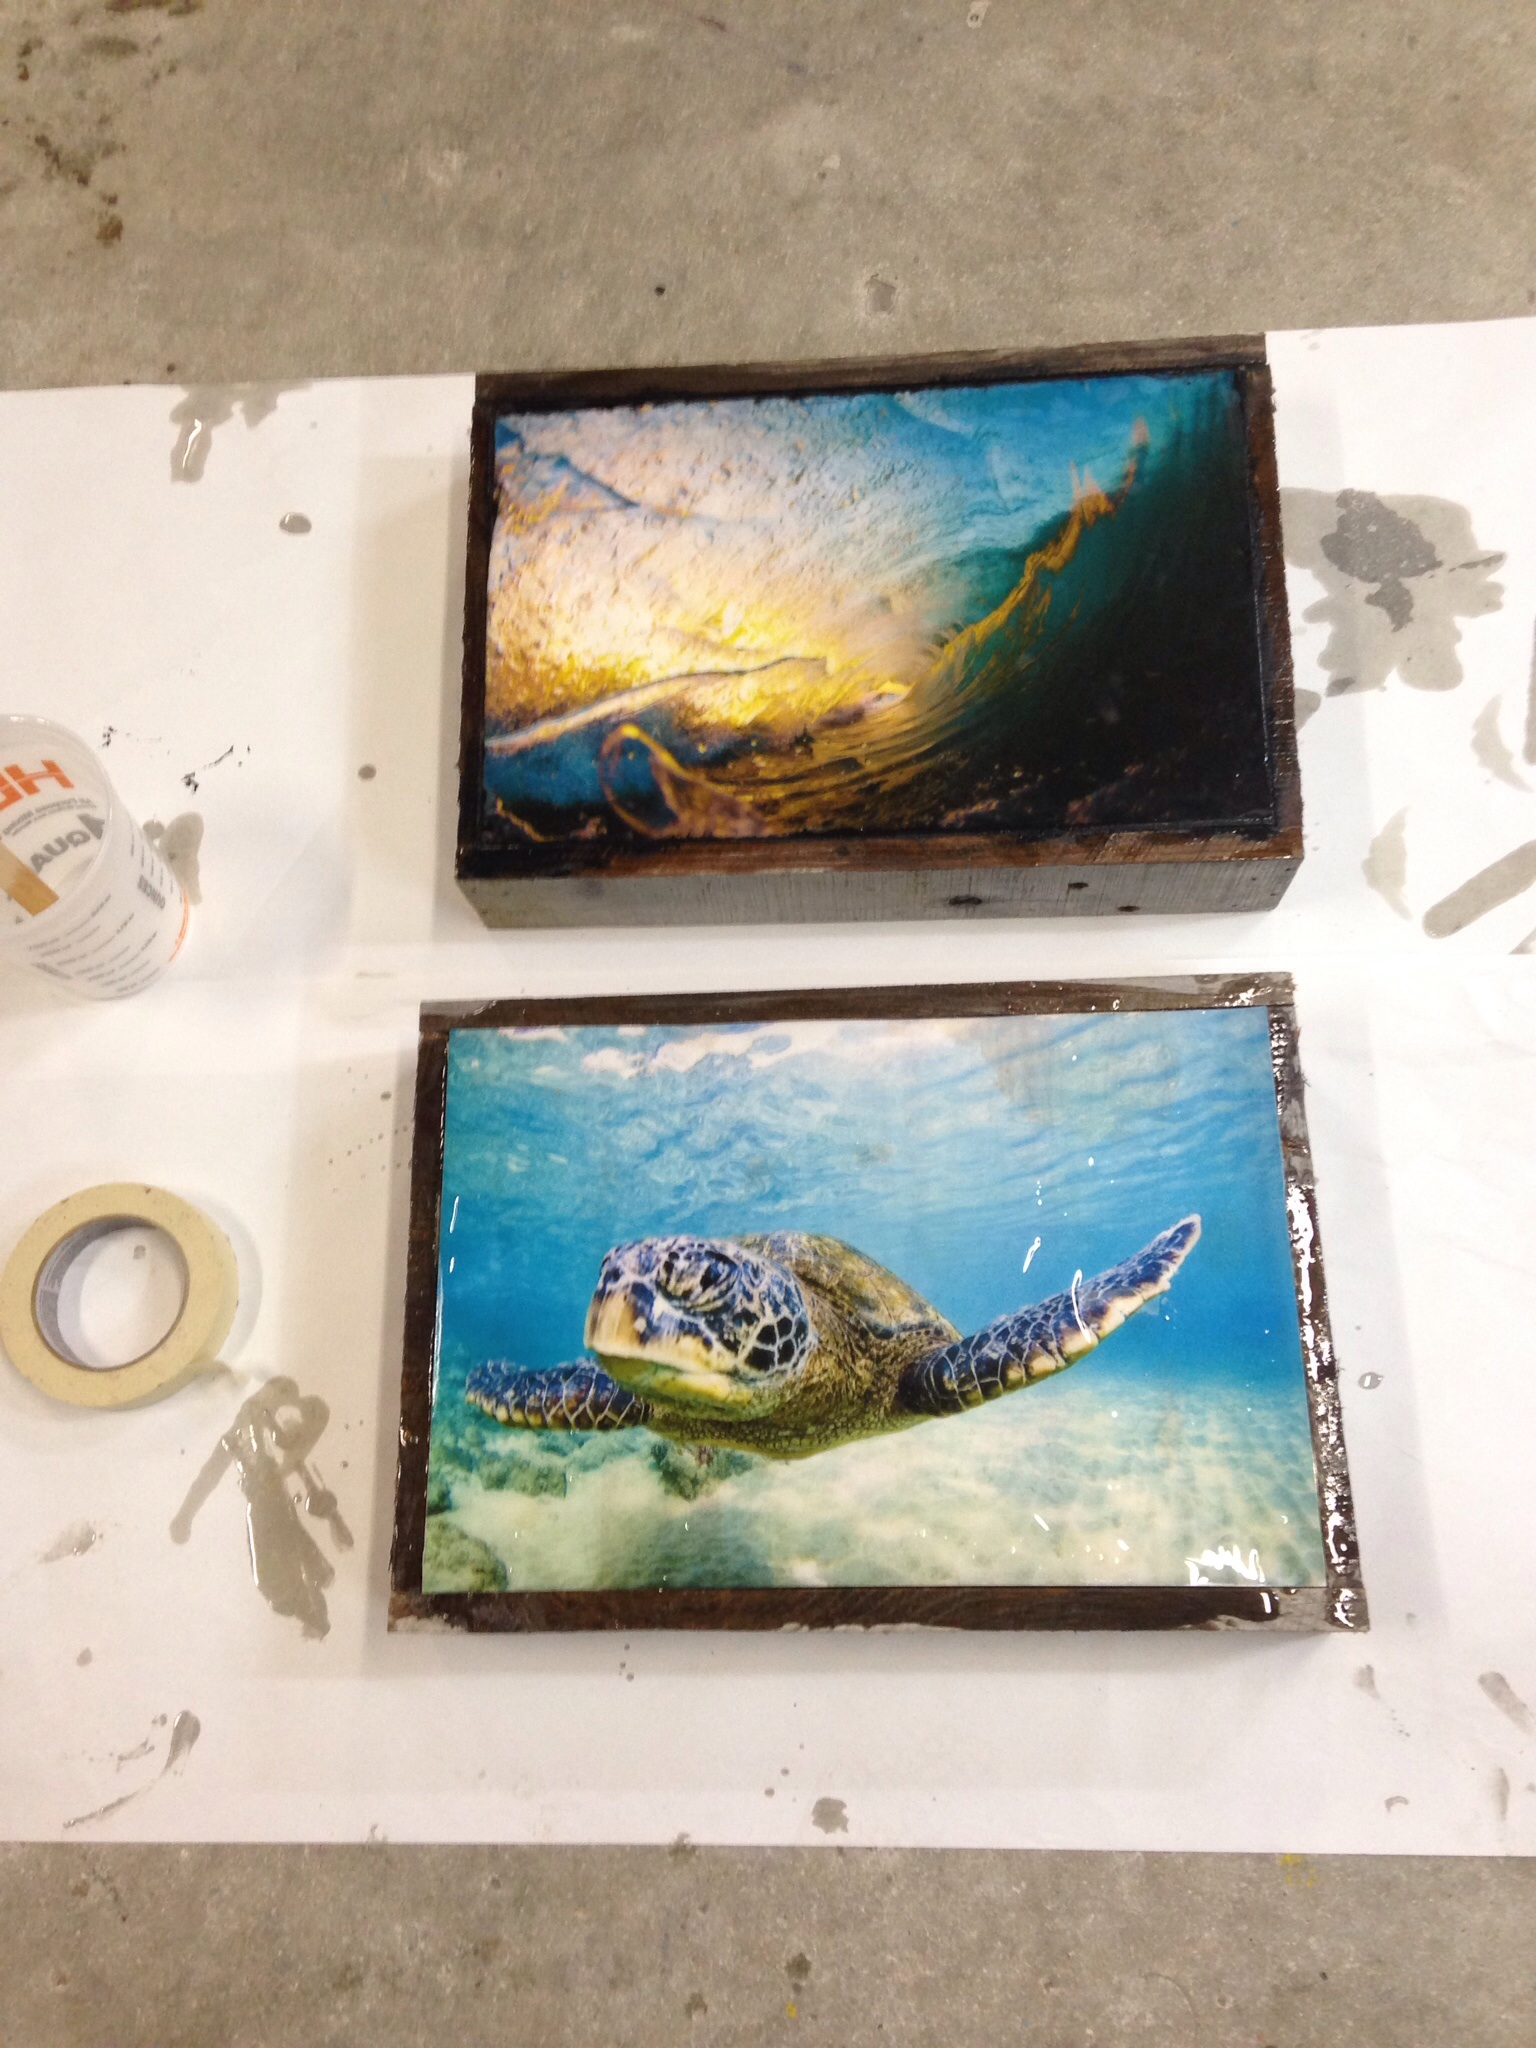 Resin coated and drying. The turtles is 100% ruined but the barrels may just make it. If so, it won't be for sale!! First's are the keepers!